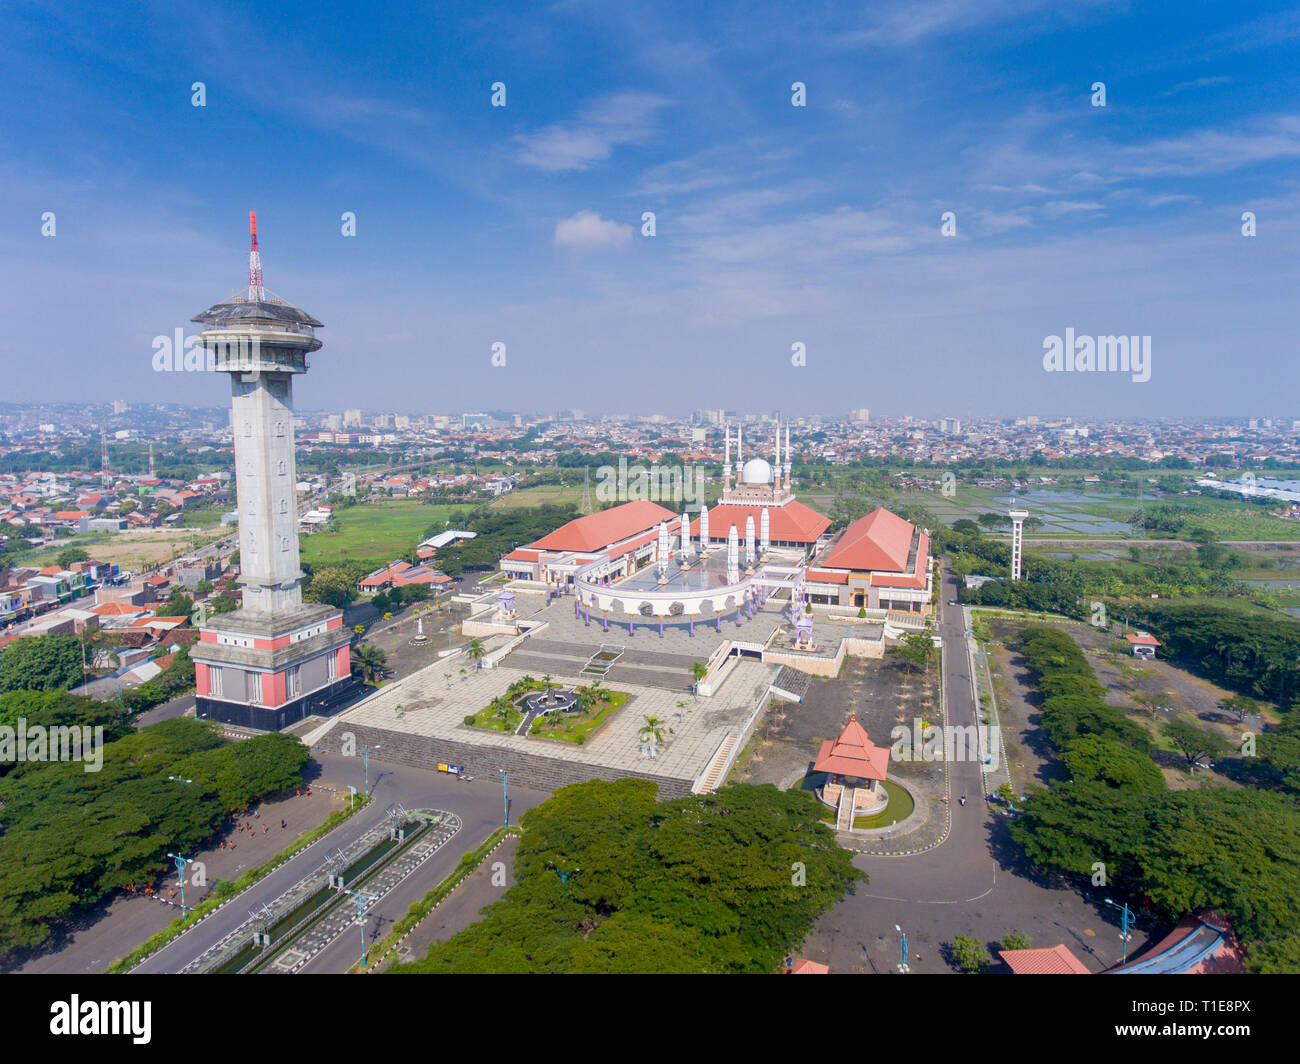 Grand Mosque of Central Java Province in Semarang. Indonesia is the largest muslim country in the world. The mosque can accommodate 16,000 prayers. - Stock Image